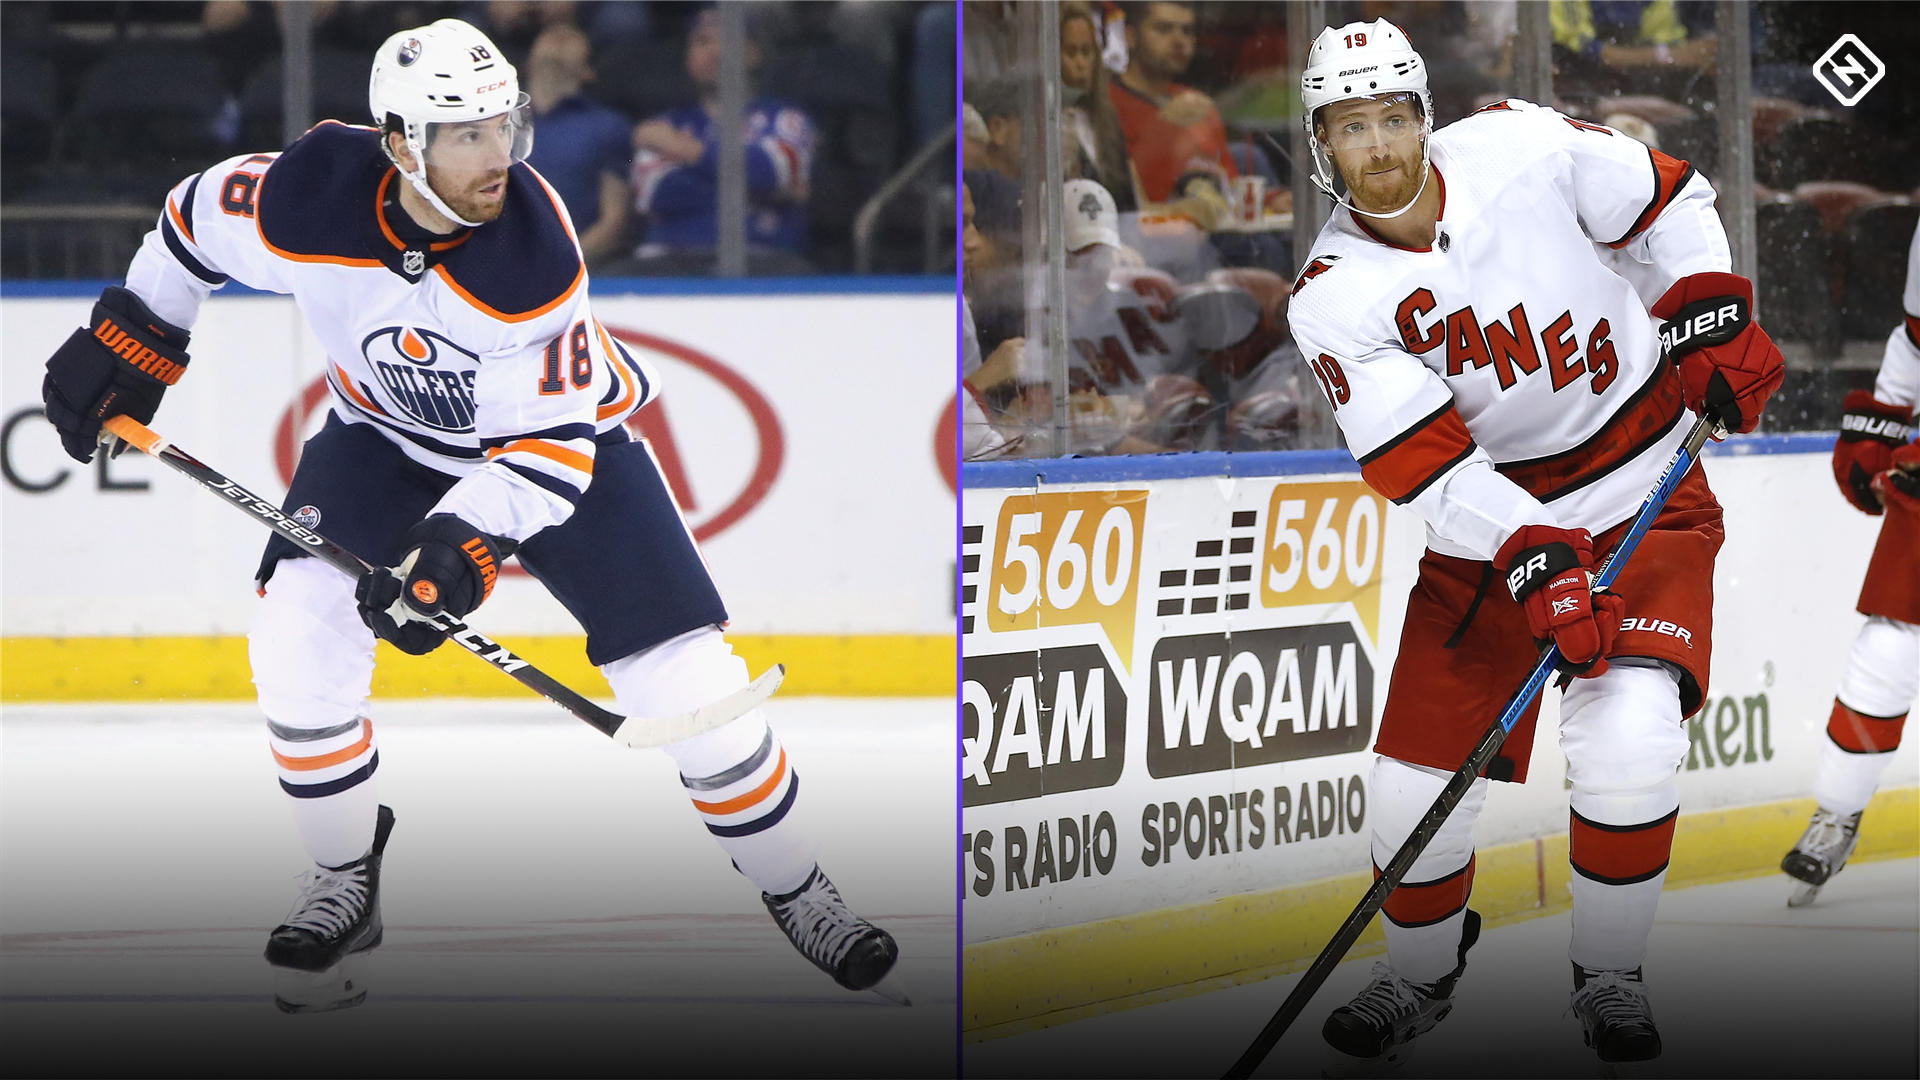 Today's Daily Fantasy Hockey Picks: Advice, strategy for Wednesday's DraftKings, FanDuel NHL DFS contests